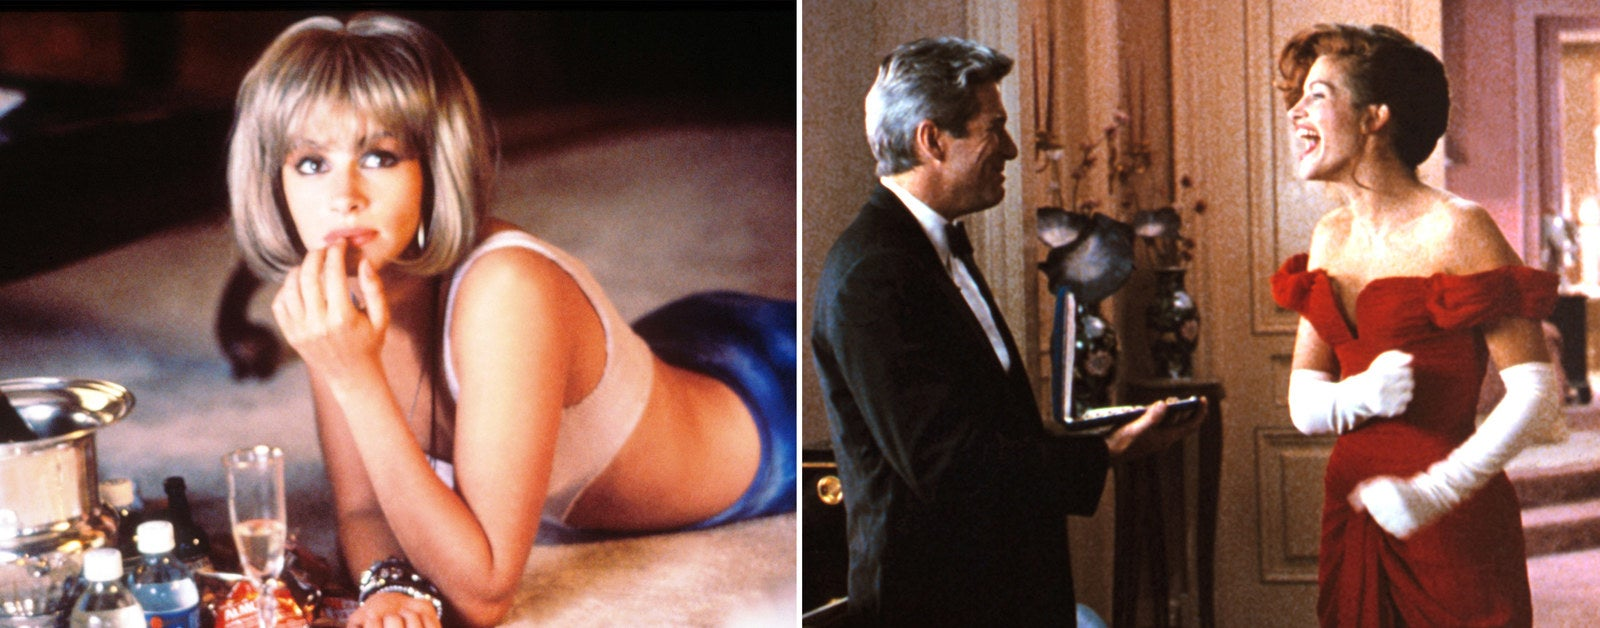 Roberts as Vivian in Pretty Woman, 1990.